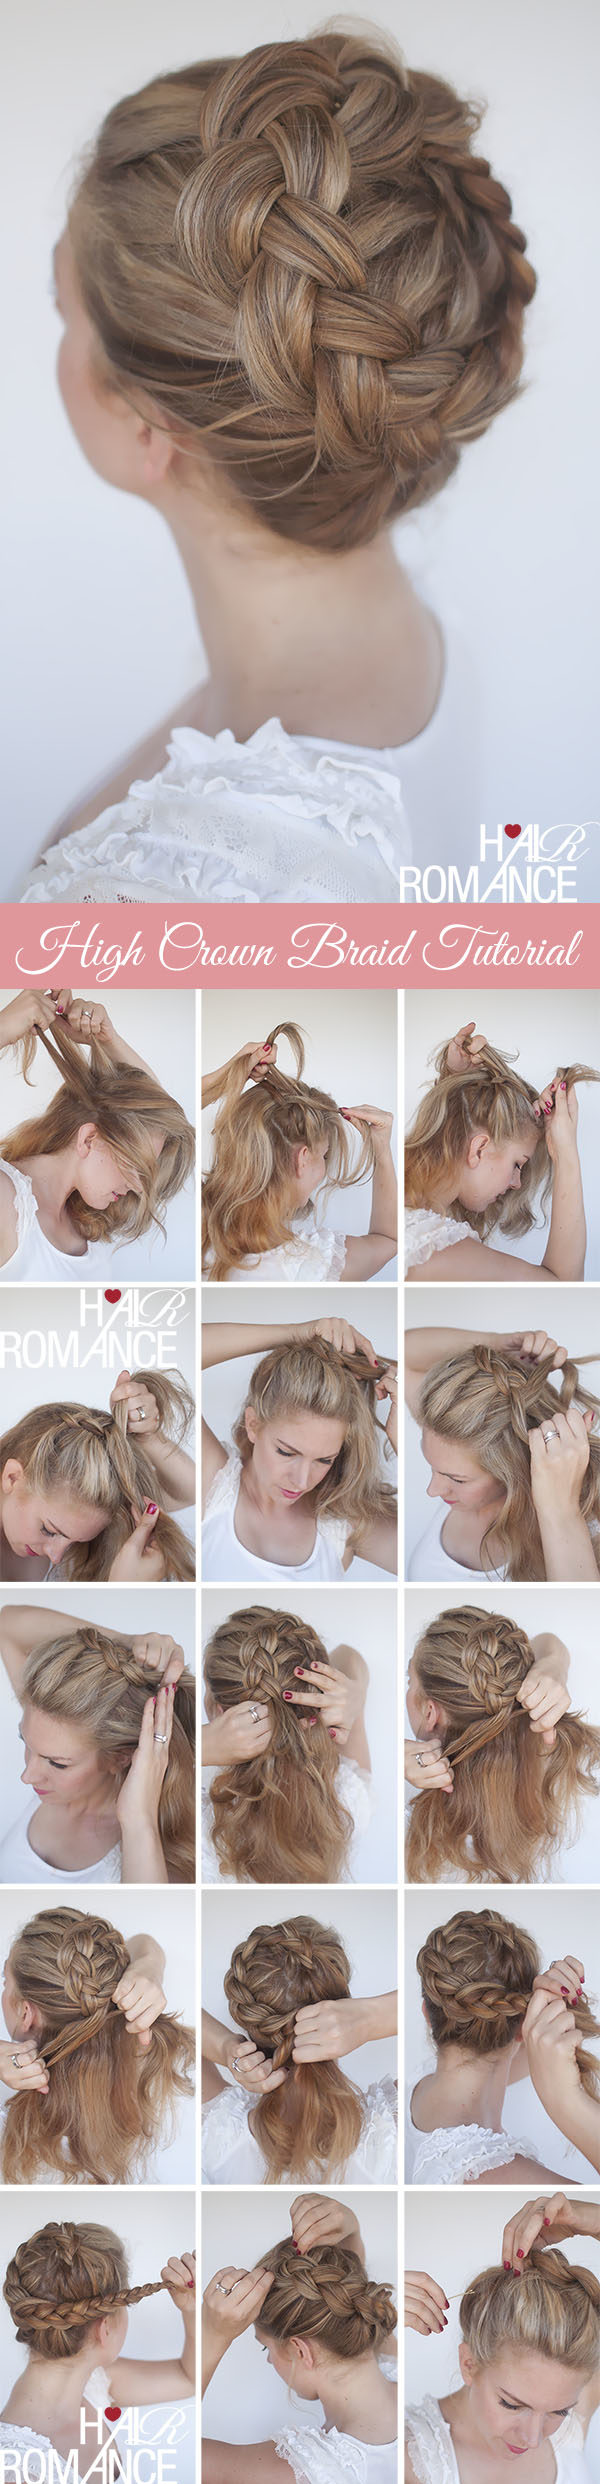 The Best Crown Braids DIY Tutorials For Princess Look Anywhere